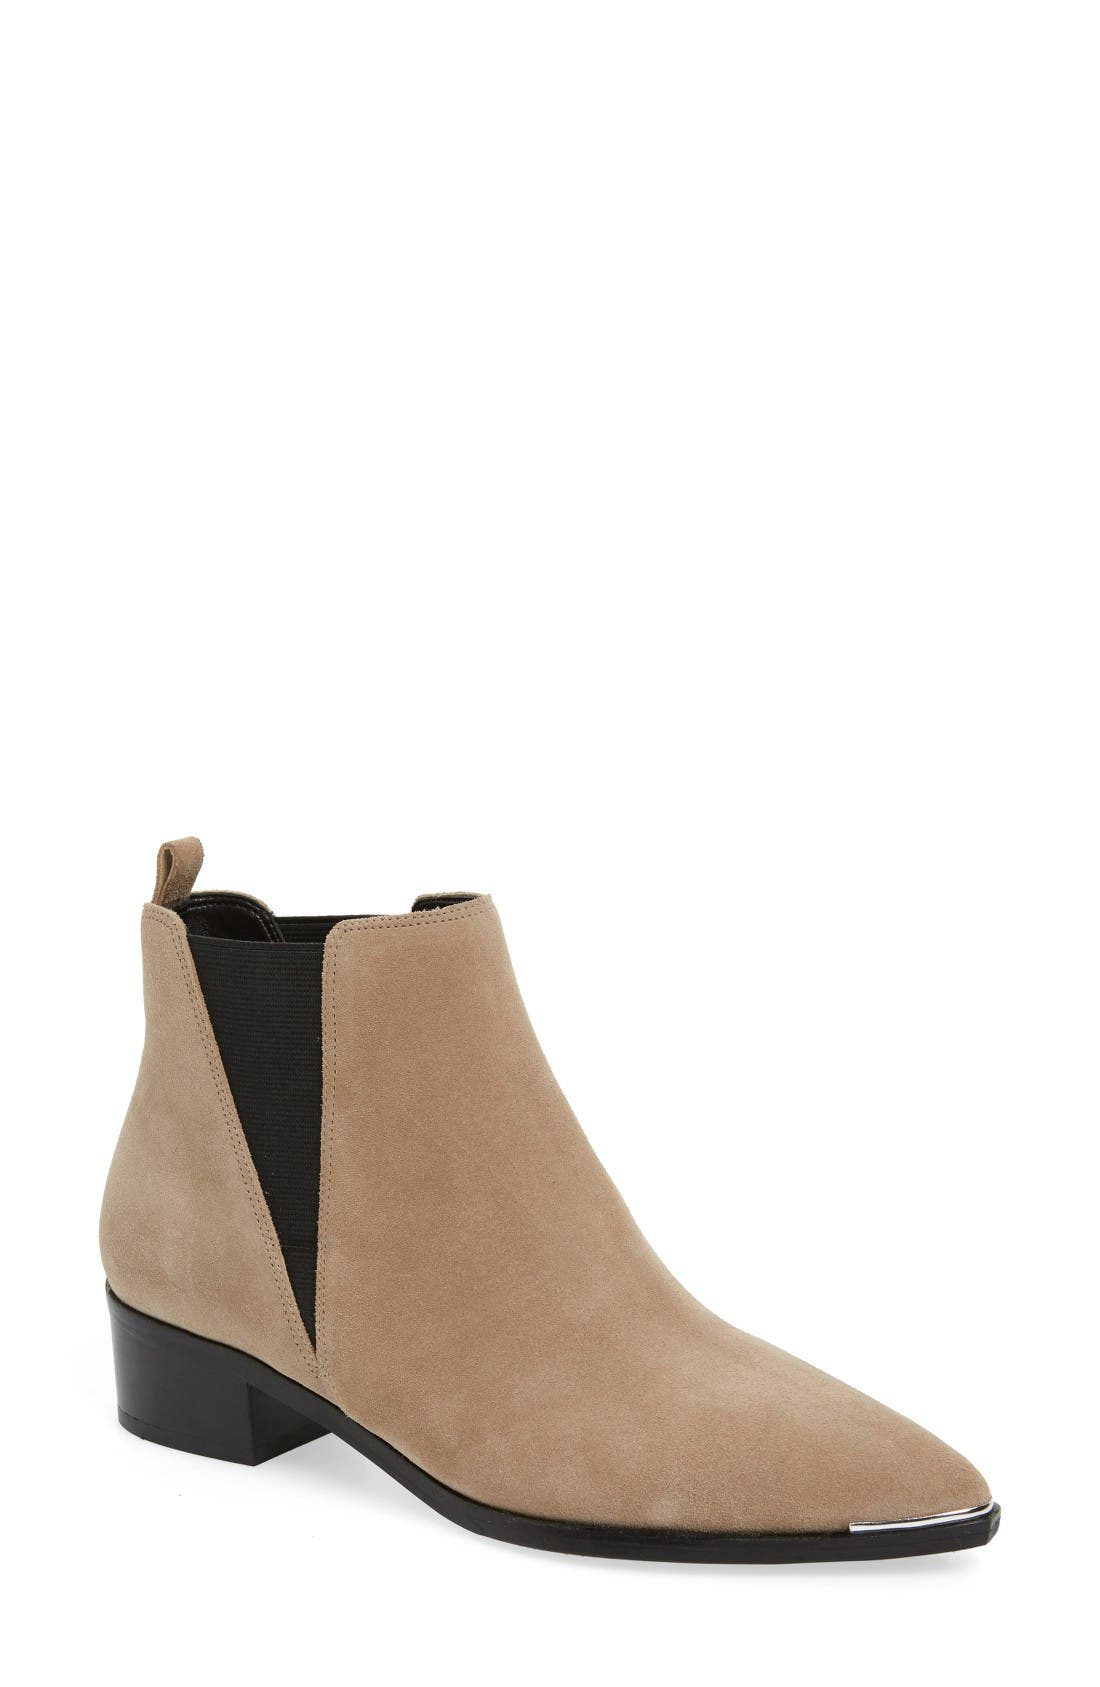 'Yale' Chelsea Boot,                             Main thumbnail 1, color,                             Medium Natural Suede